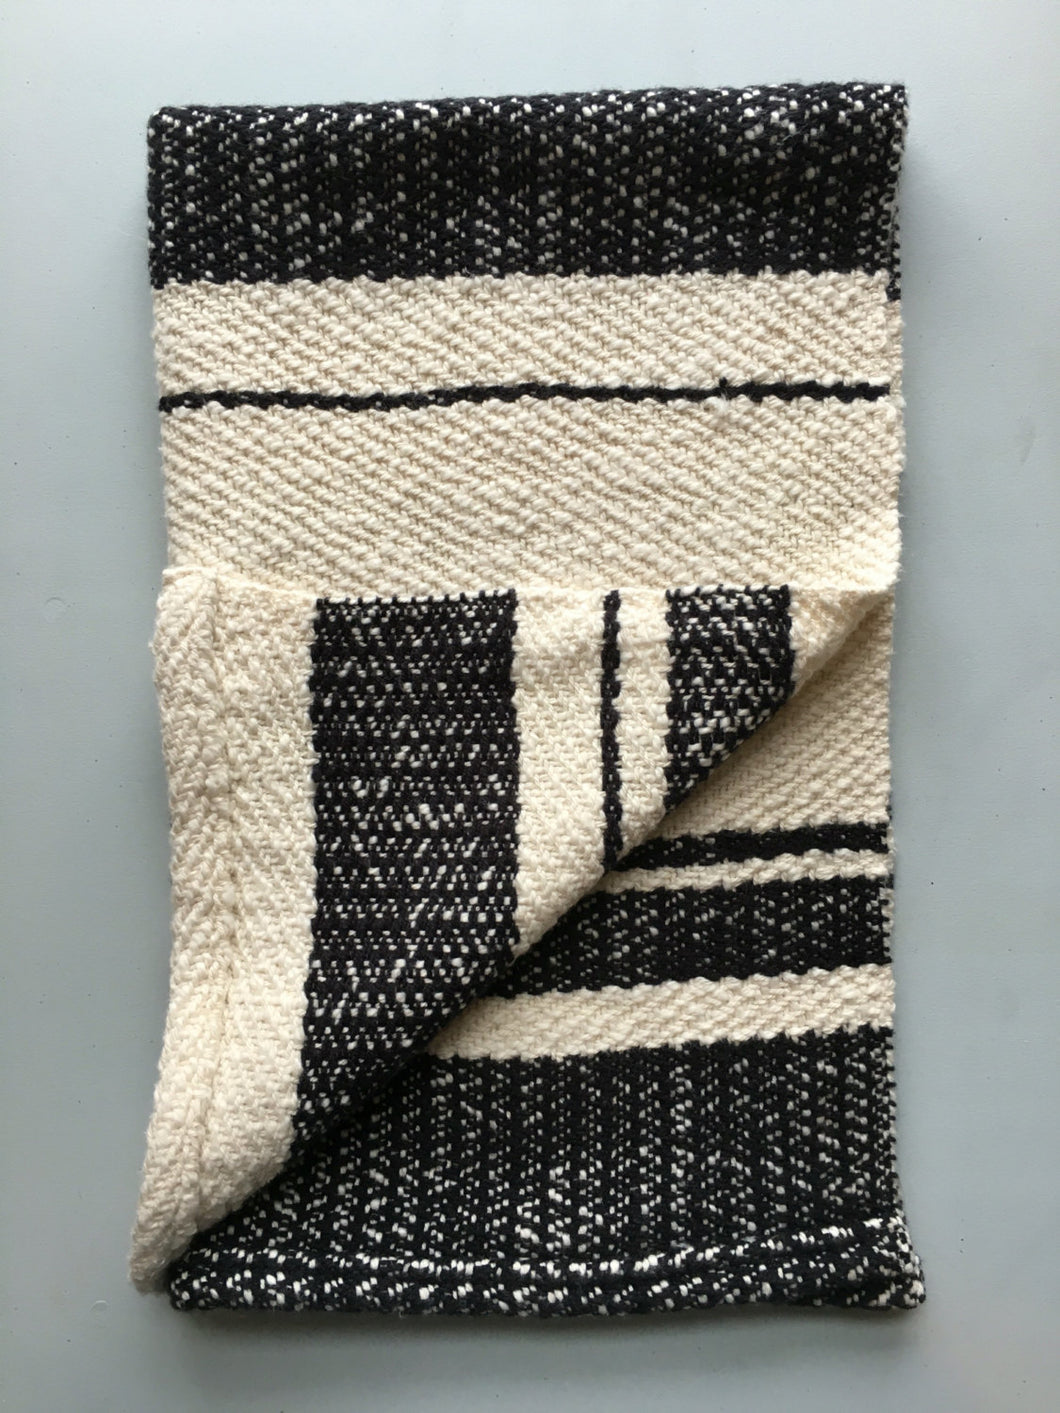 Dish Towel Woven Towel Black and White